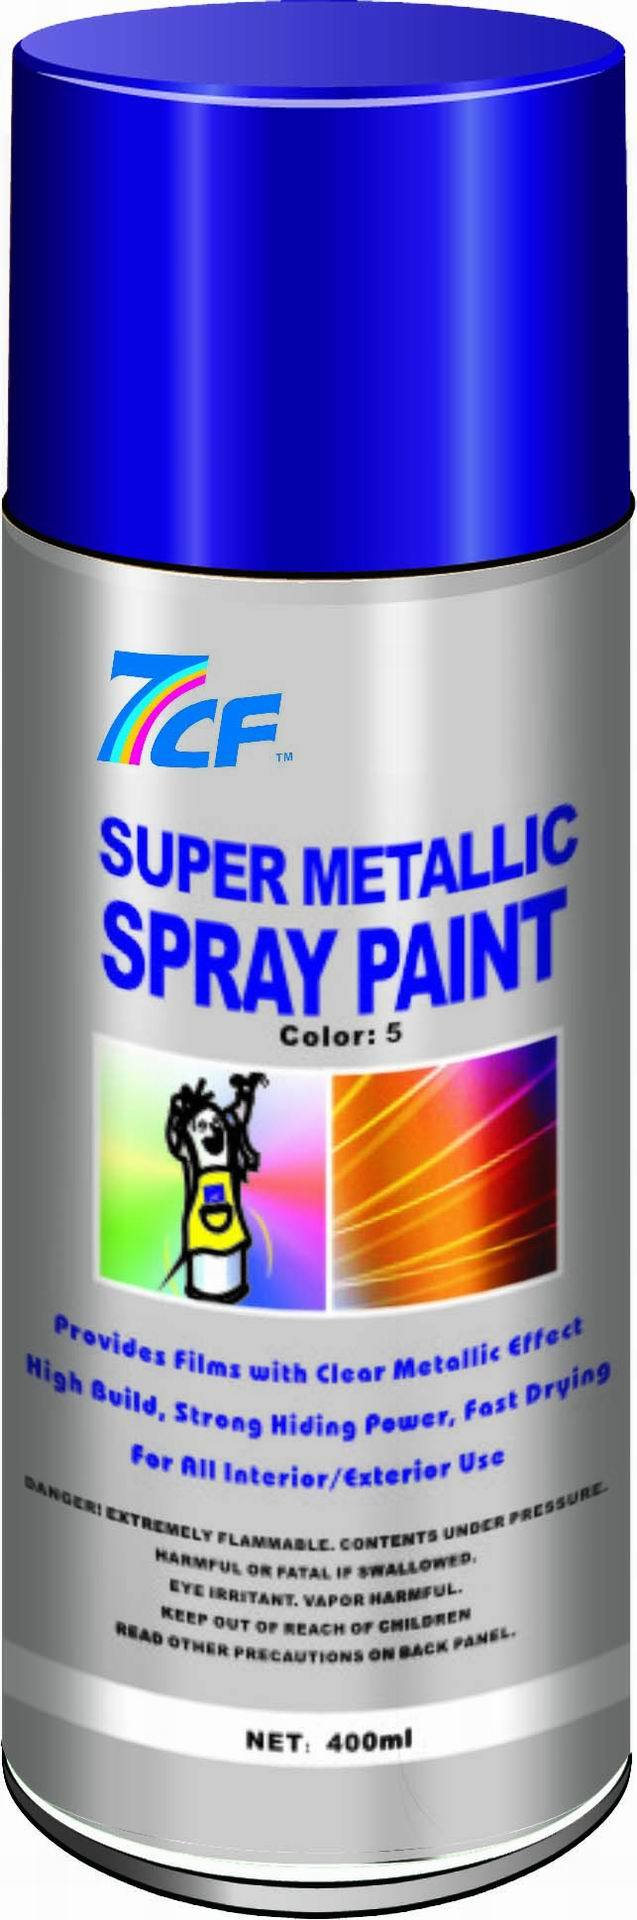 China Metal Spray Paint China Spray Paint For Metal Metal Spray Paint Colors